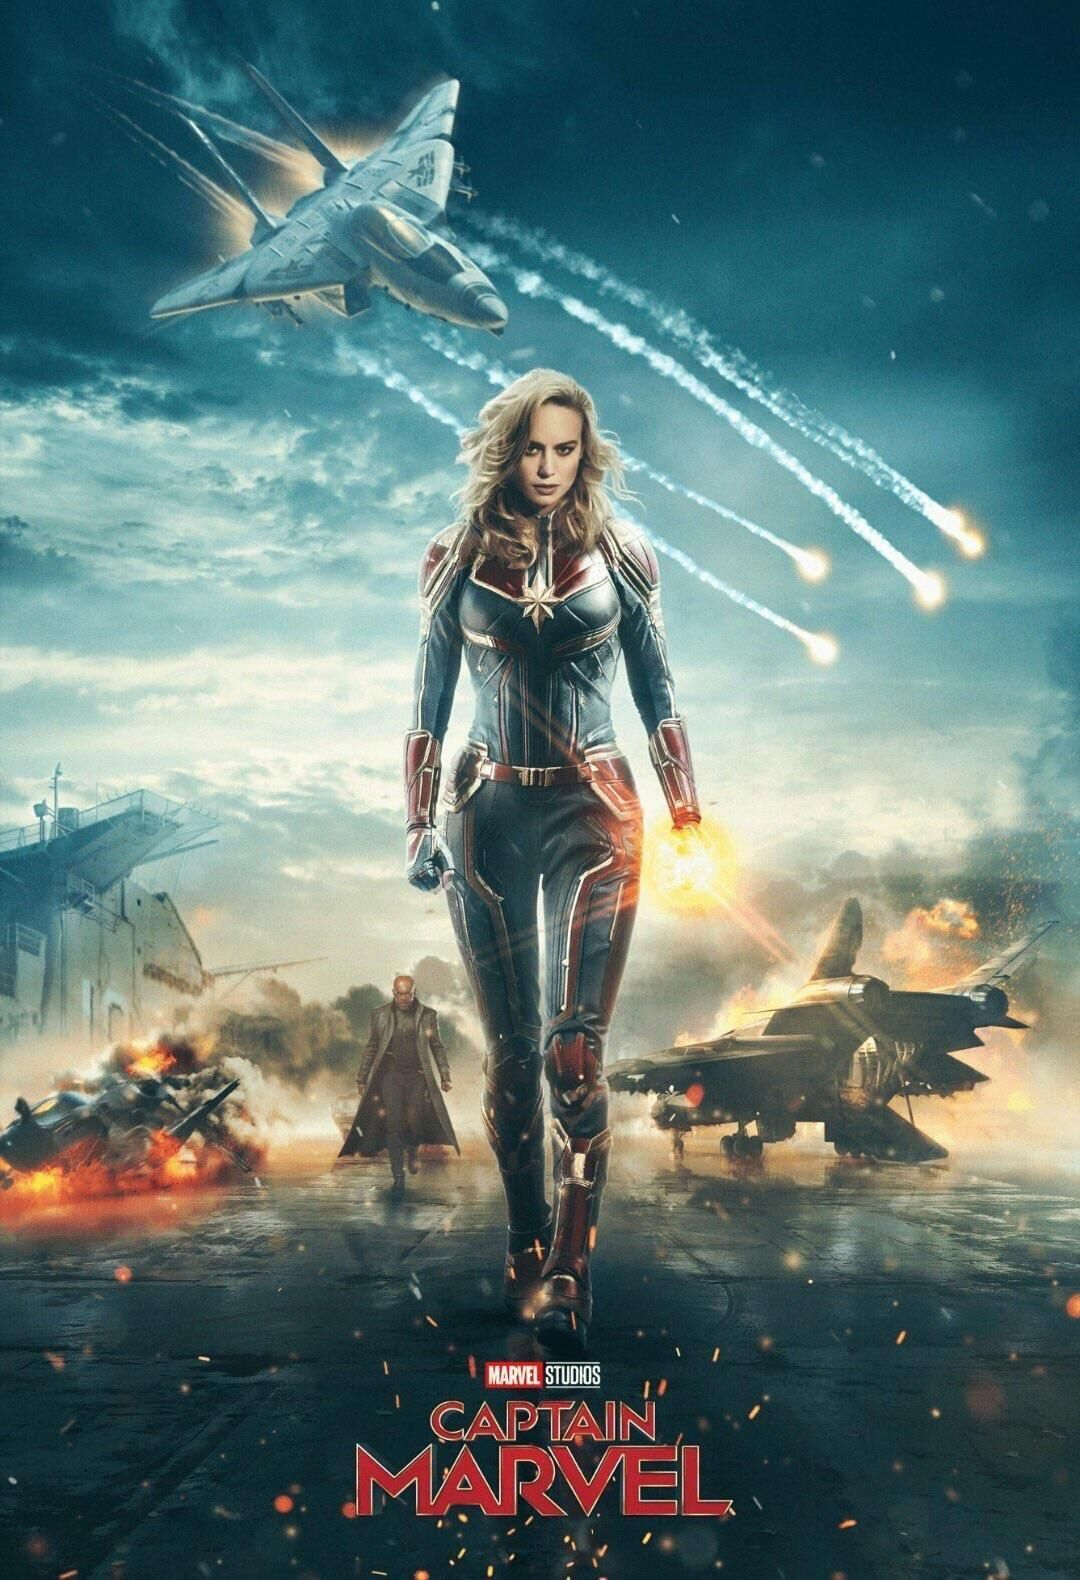 New Hindi Movei 2018 2019 Bolliwood: 1 Captain Marvel Movie Poster 2019 New, Avengers Print